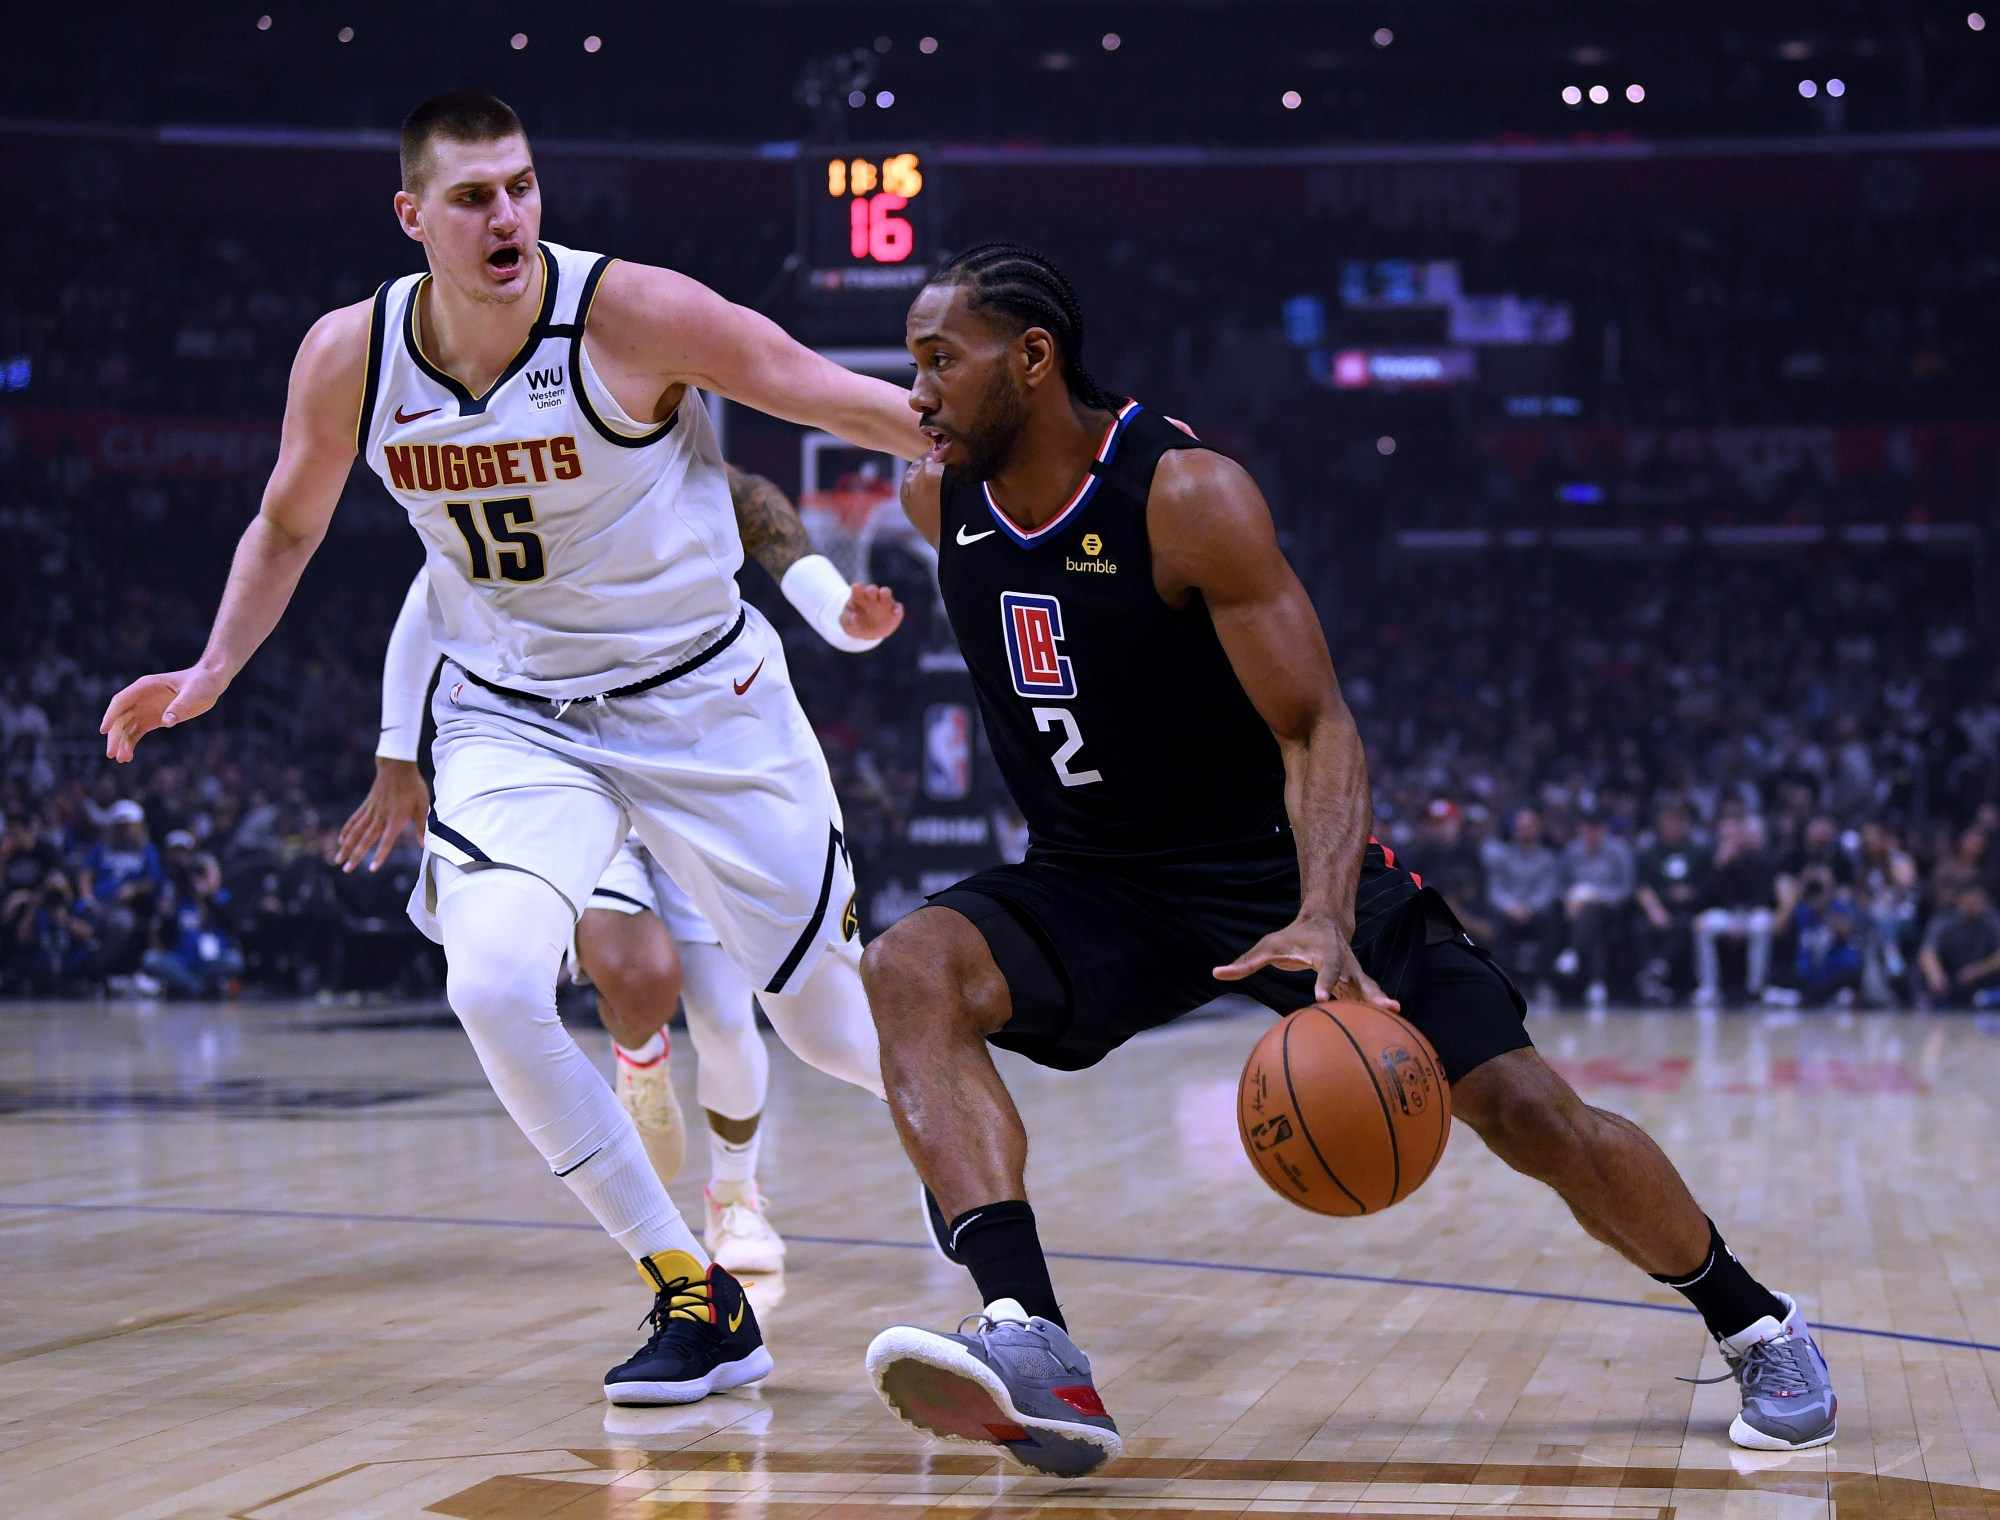 Kawhi Leonard #2 of the L.A. Clippers drives to the basket on Nikola Jokic #15 of the Denver Nuggets during the first half at Staples Center on Feb. 28, 2020, in Los Angeles. (Harry How/Getty Images)